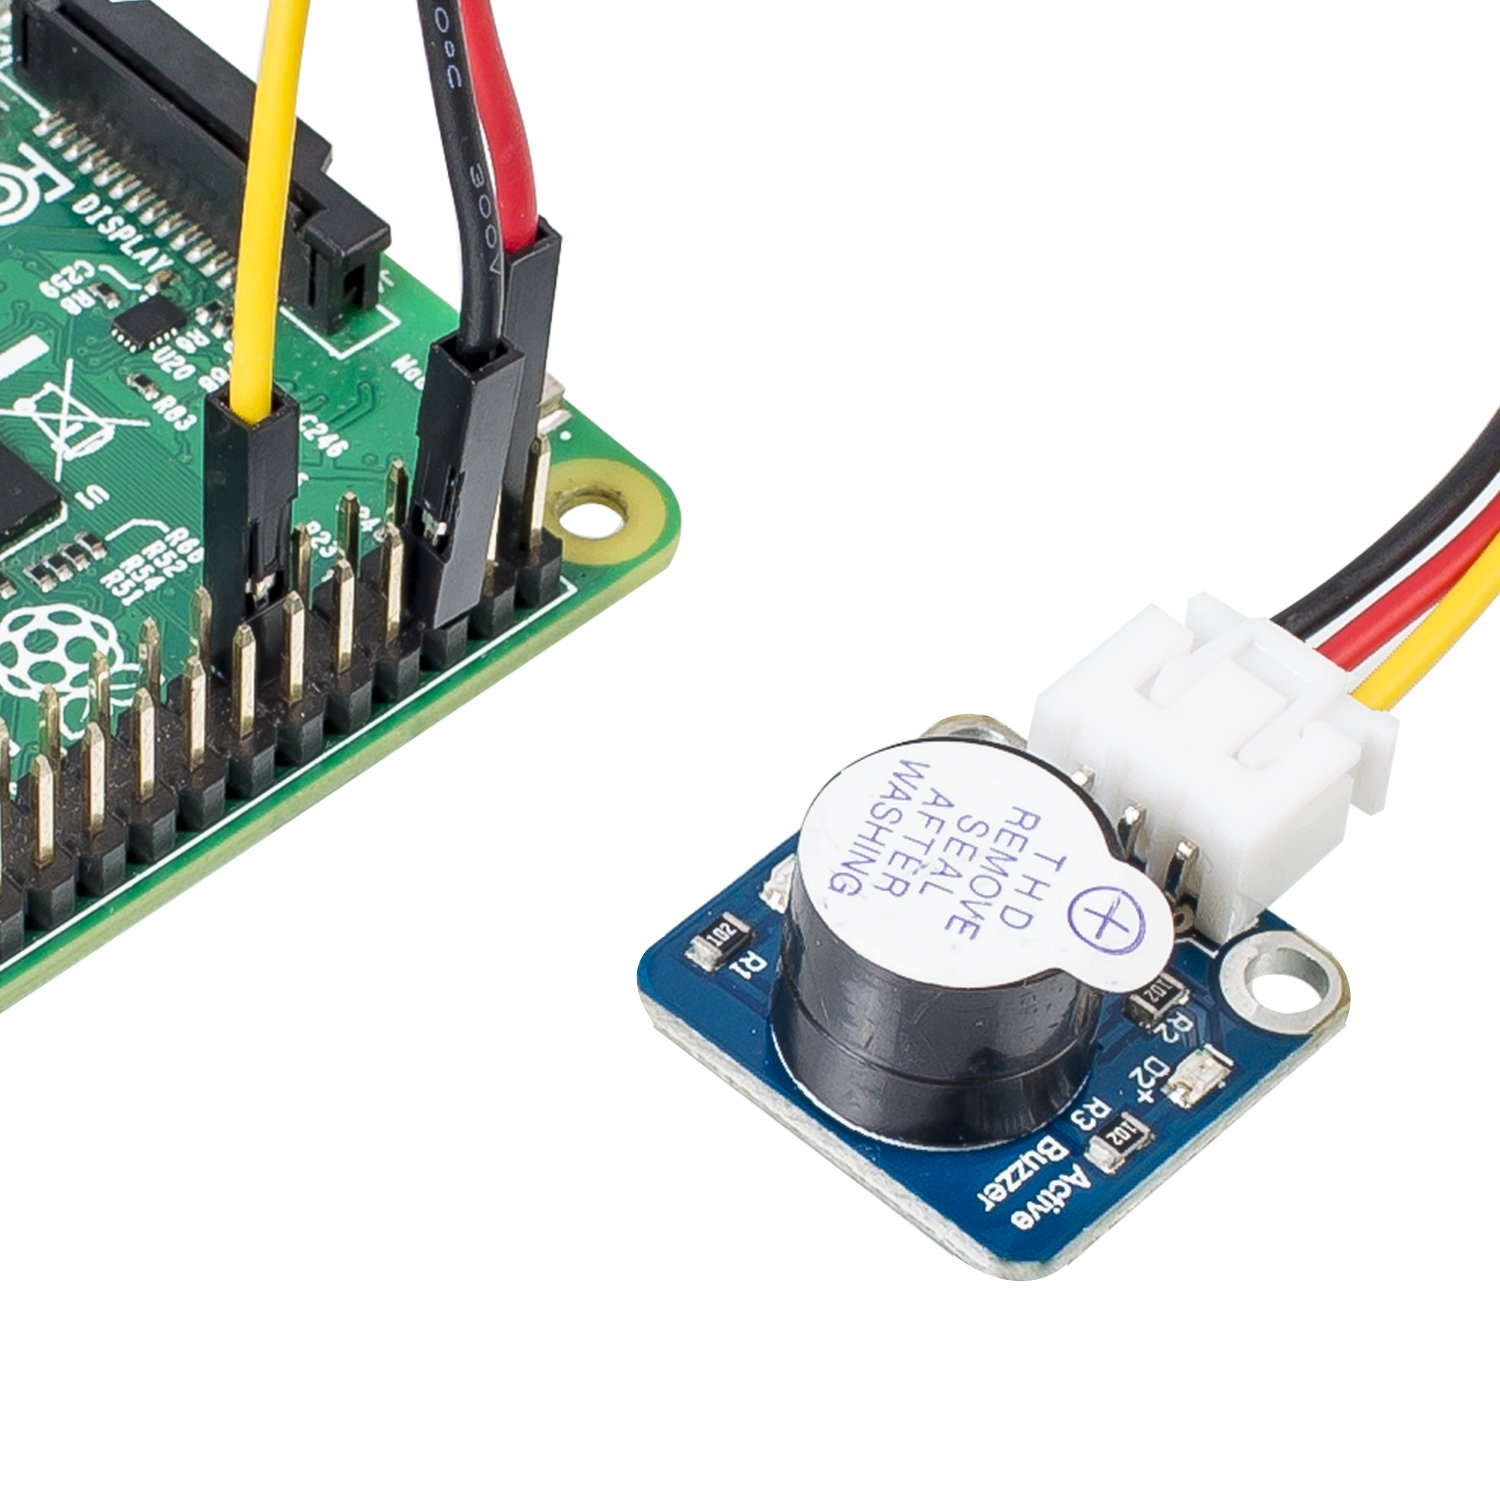 Details about SunFounder Active buzzer Module for Arduino Projects &  Raspberry Pi